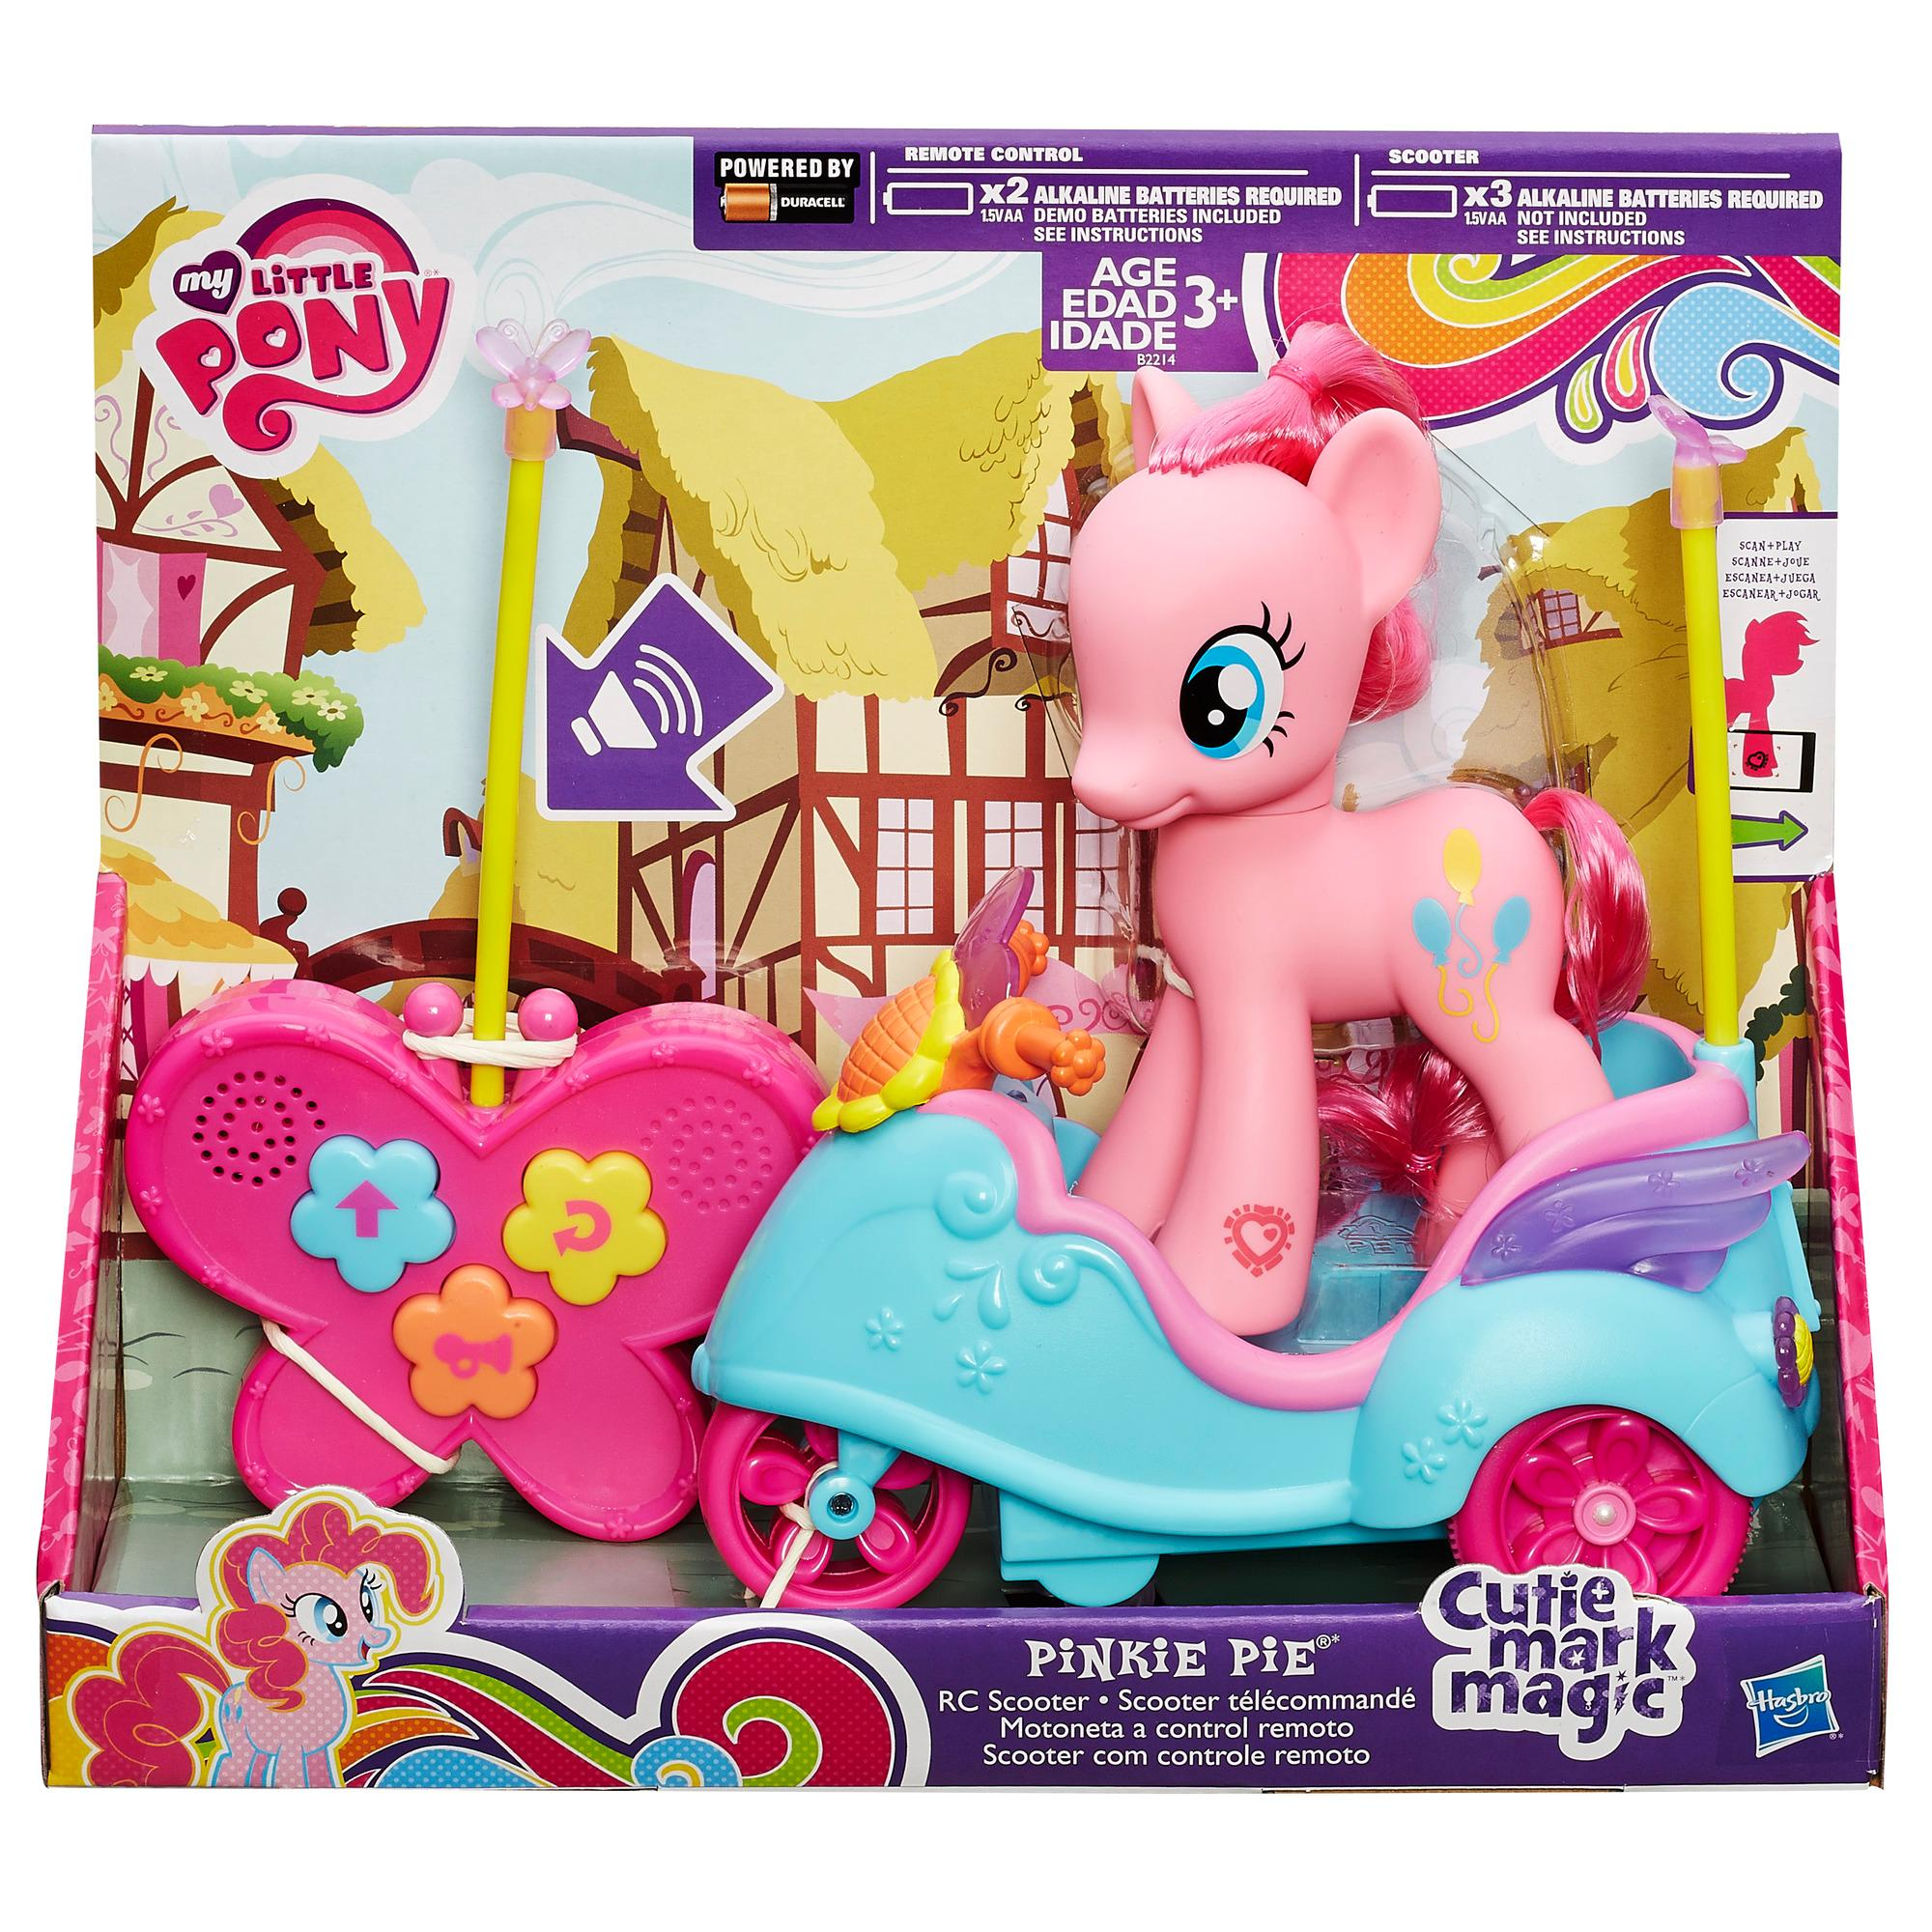 Includes scooter, remote control, pony figure, and instructions.